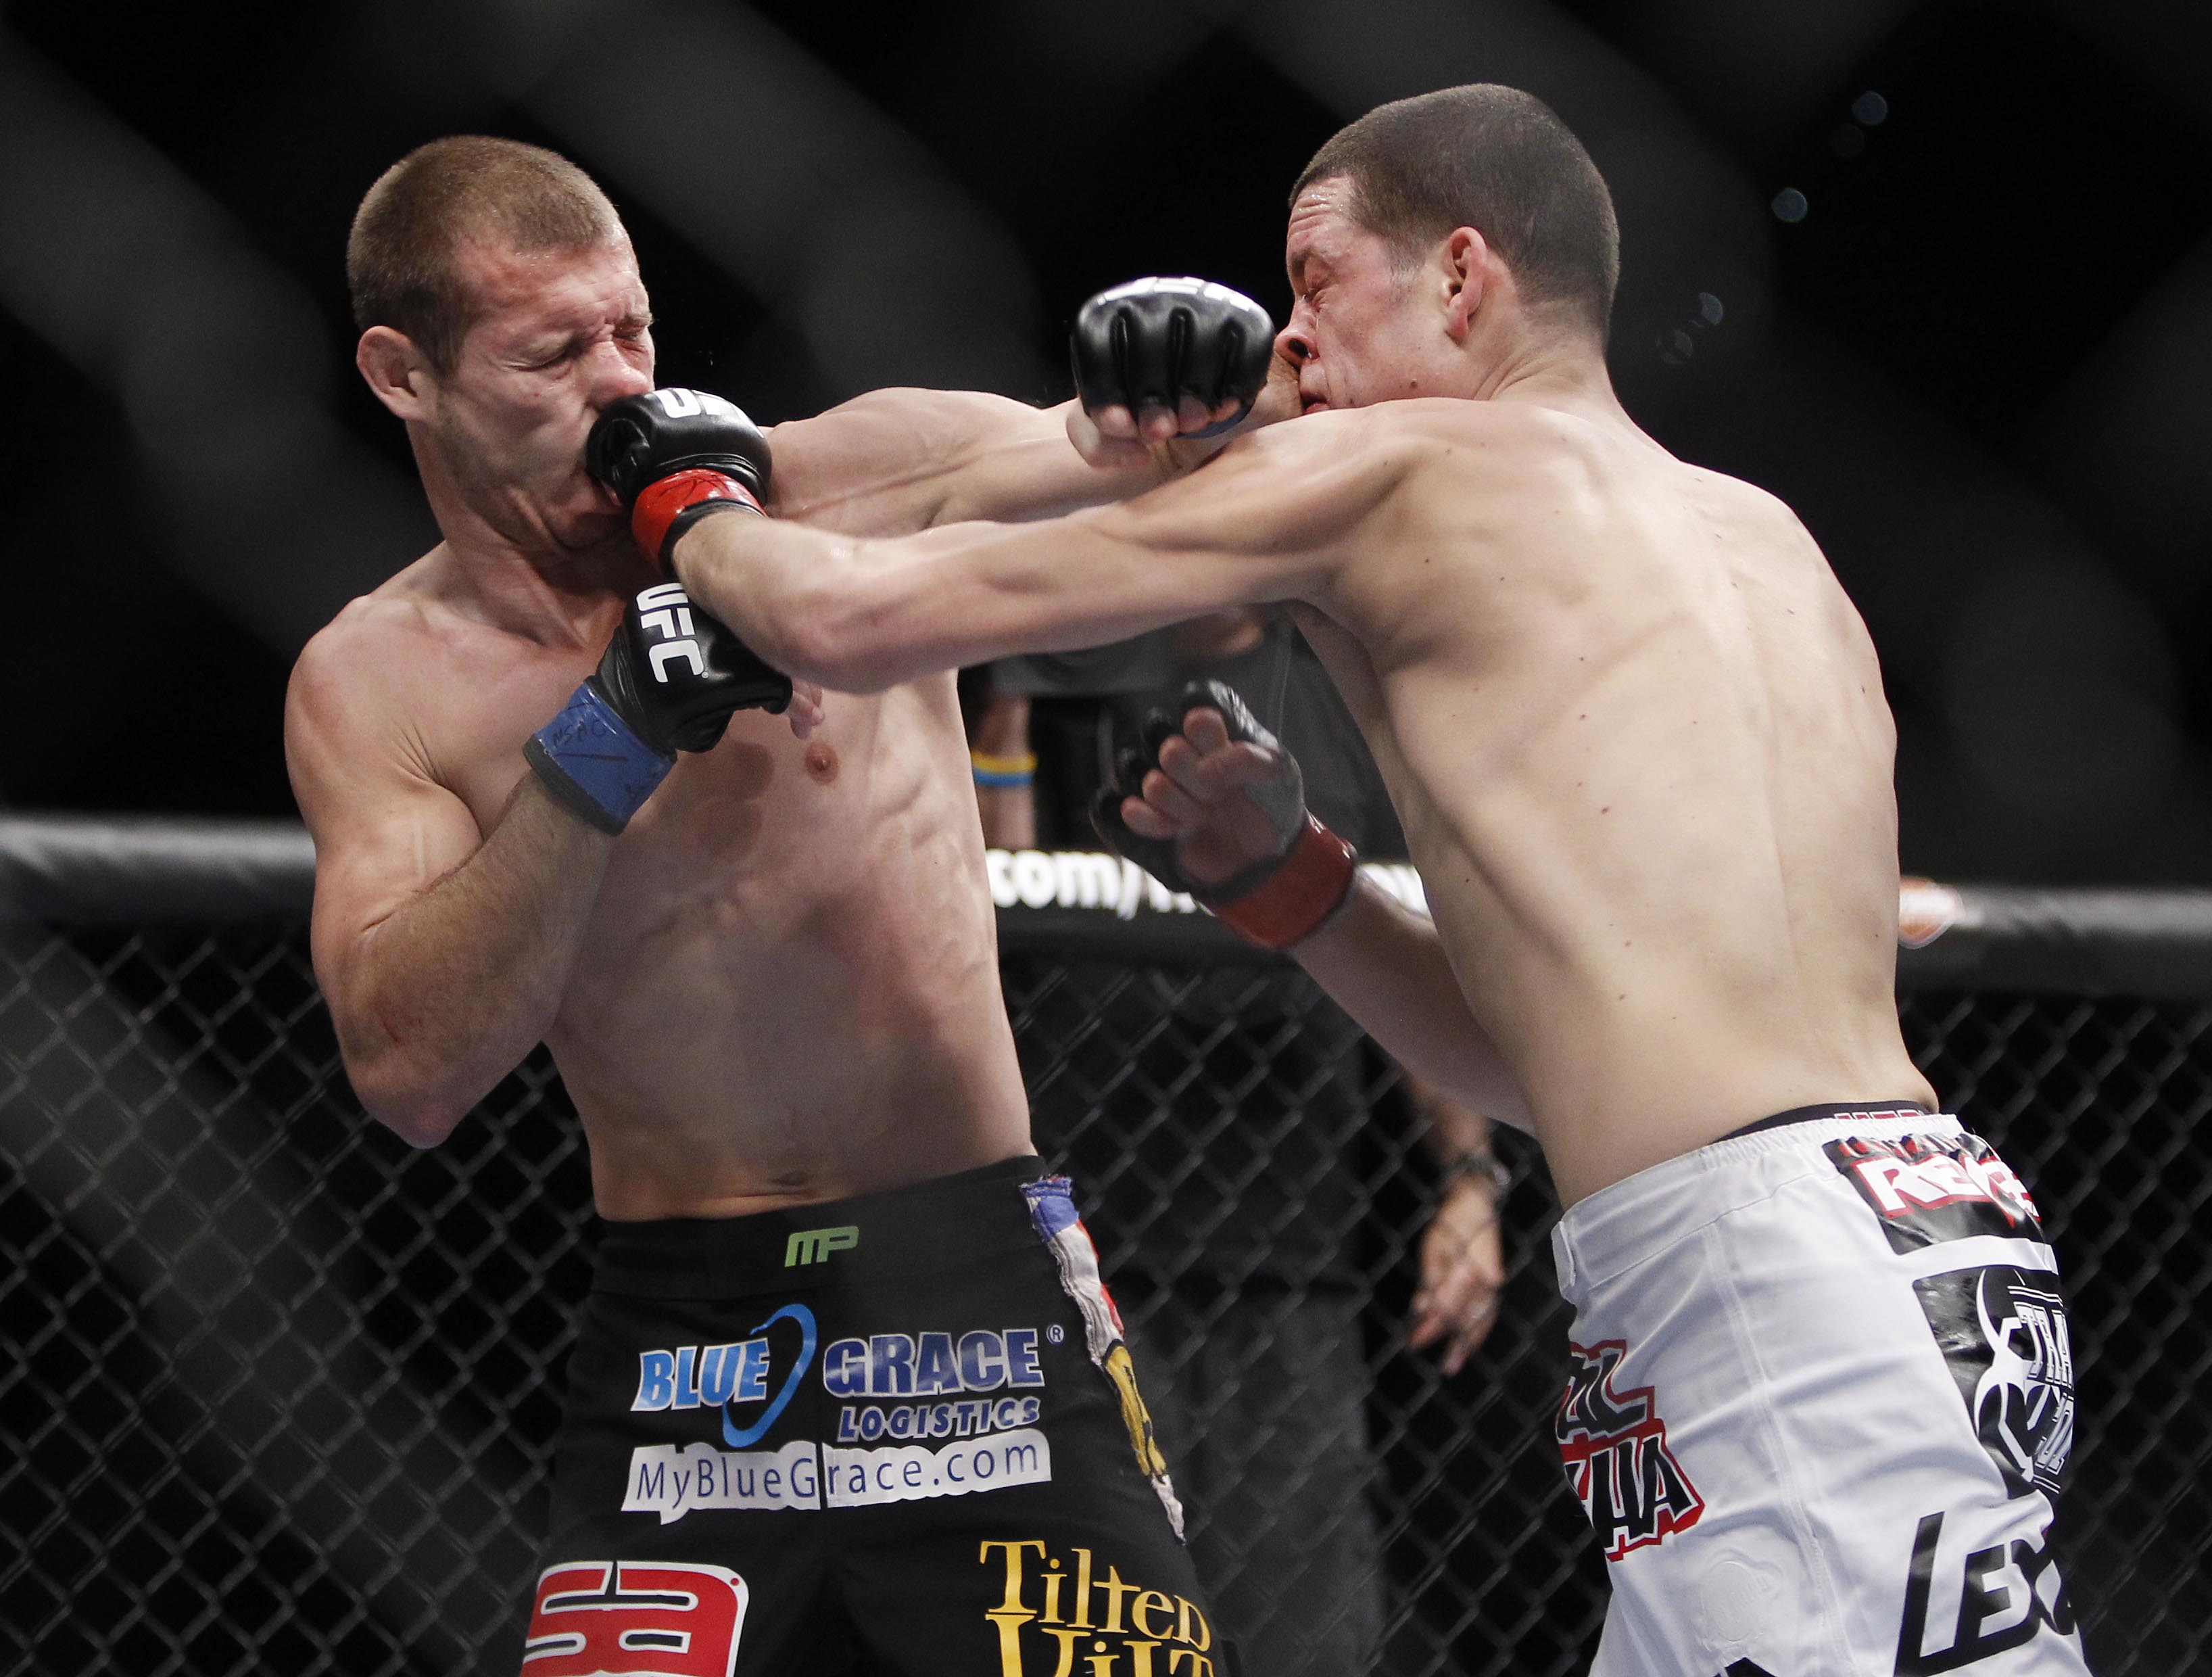 Nate Diaz, right, hits Donald Cerrone their UFC lightweight match in Dec., 2011. (AP)